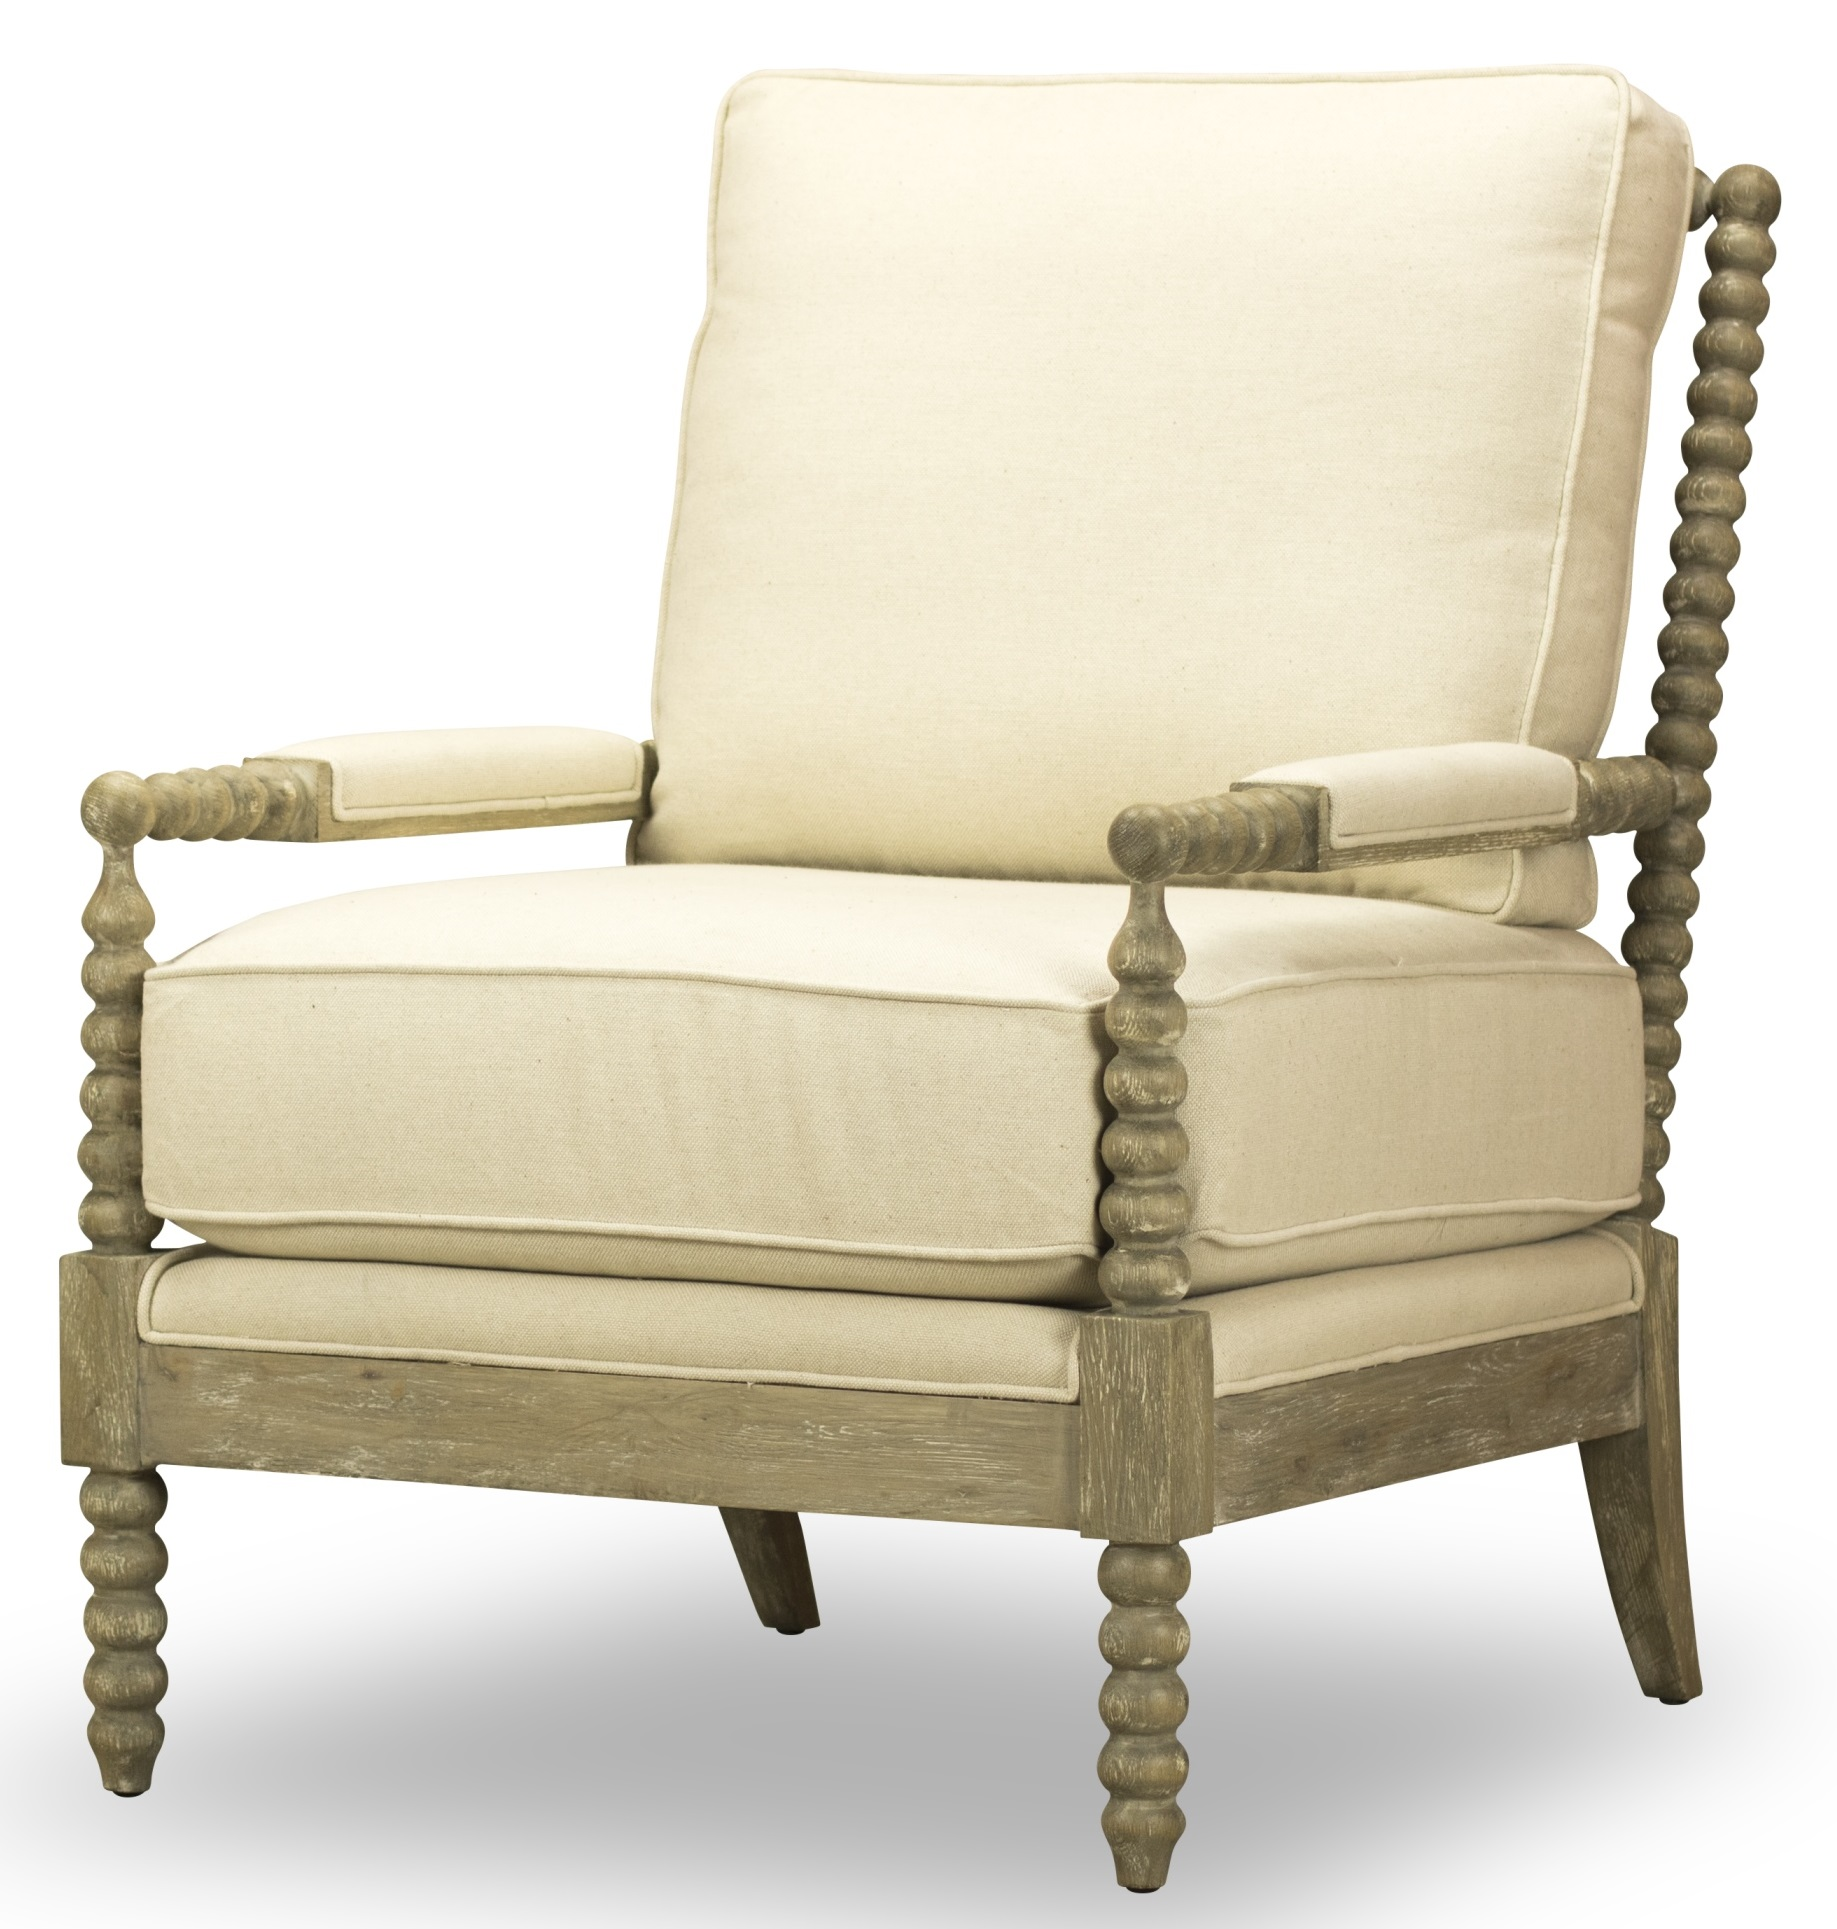 Marche Accent Chair Linen By Spectra Home CM1012 A • USA Furniture